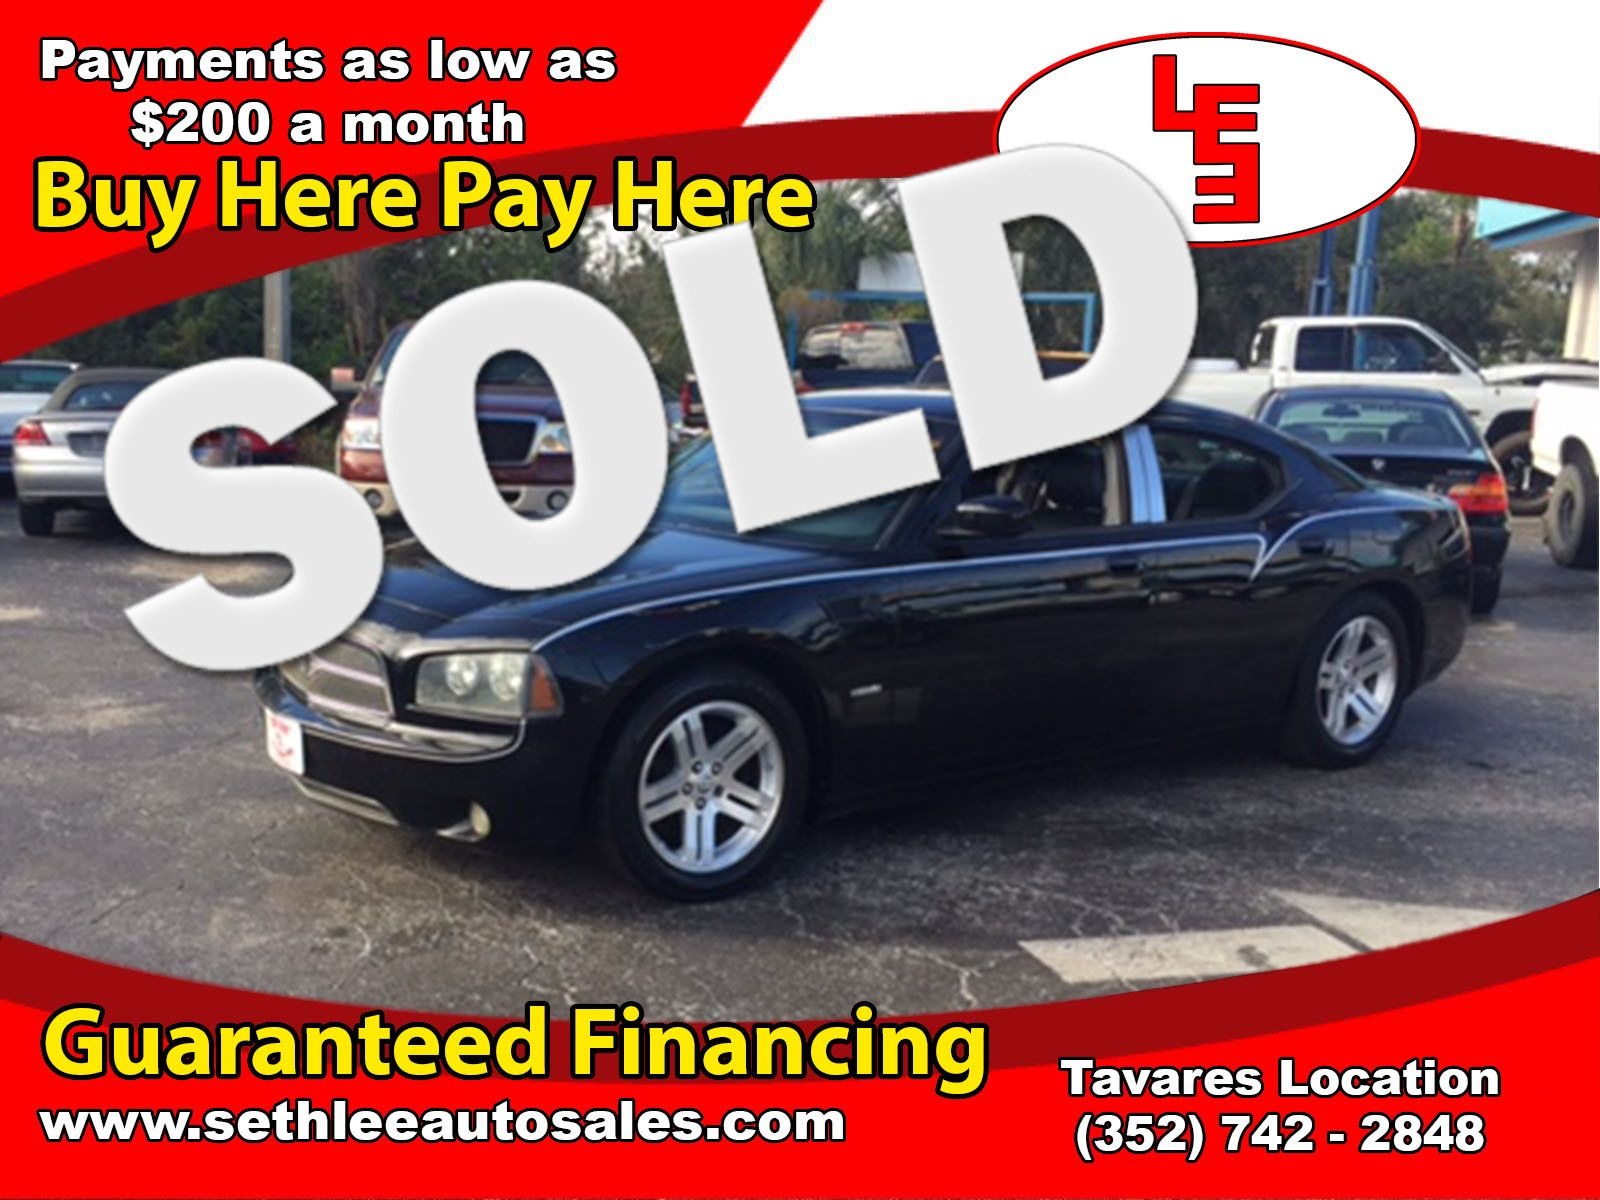 34 Great dodge charger here pay here – otoriyoce